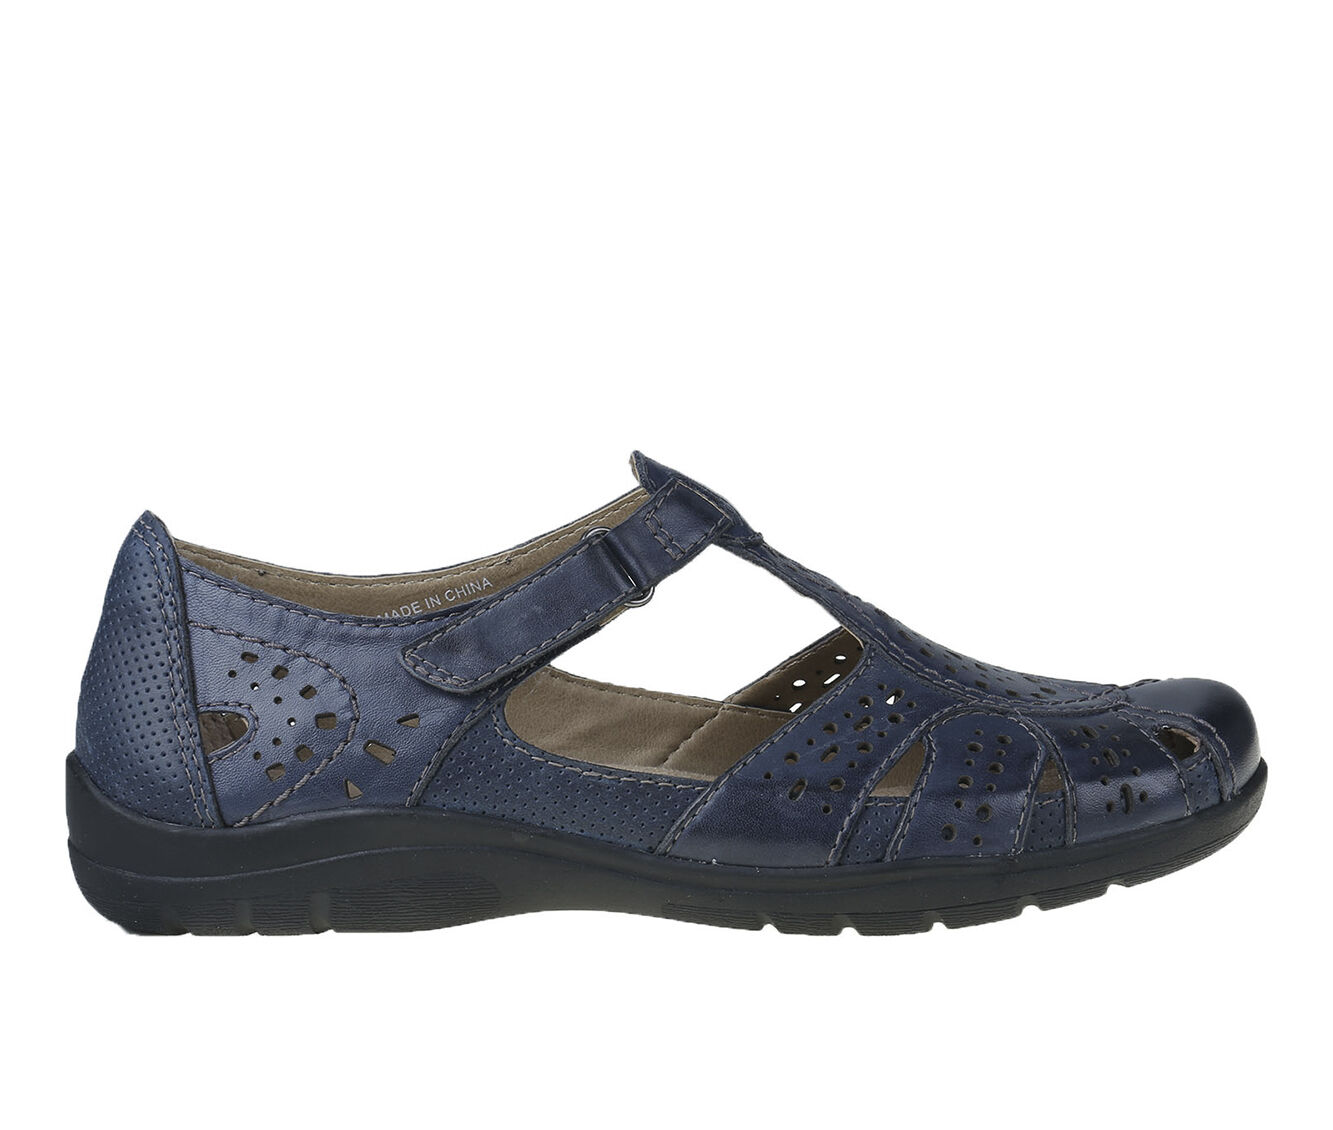 Price Reduced Women's Earth Origins Rapid Tatum Navy Blue